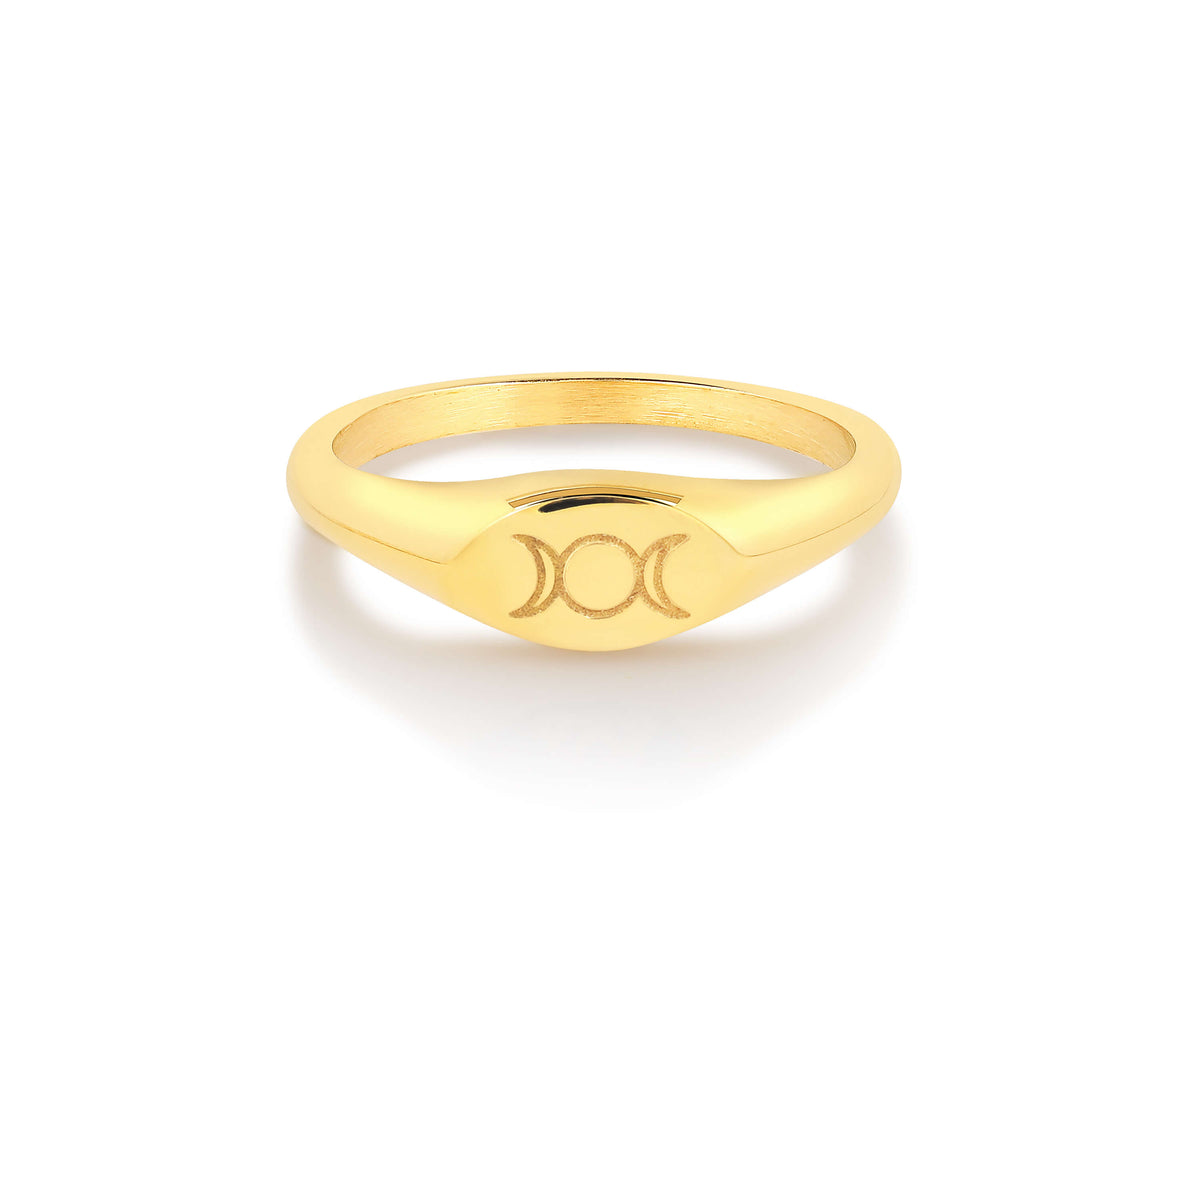 Triple Goddess Mini Signet Ring